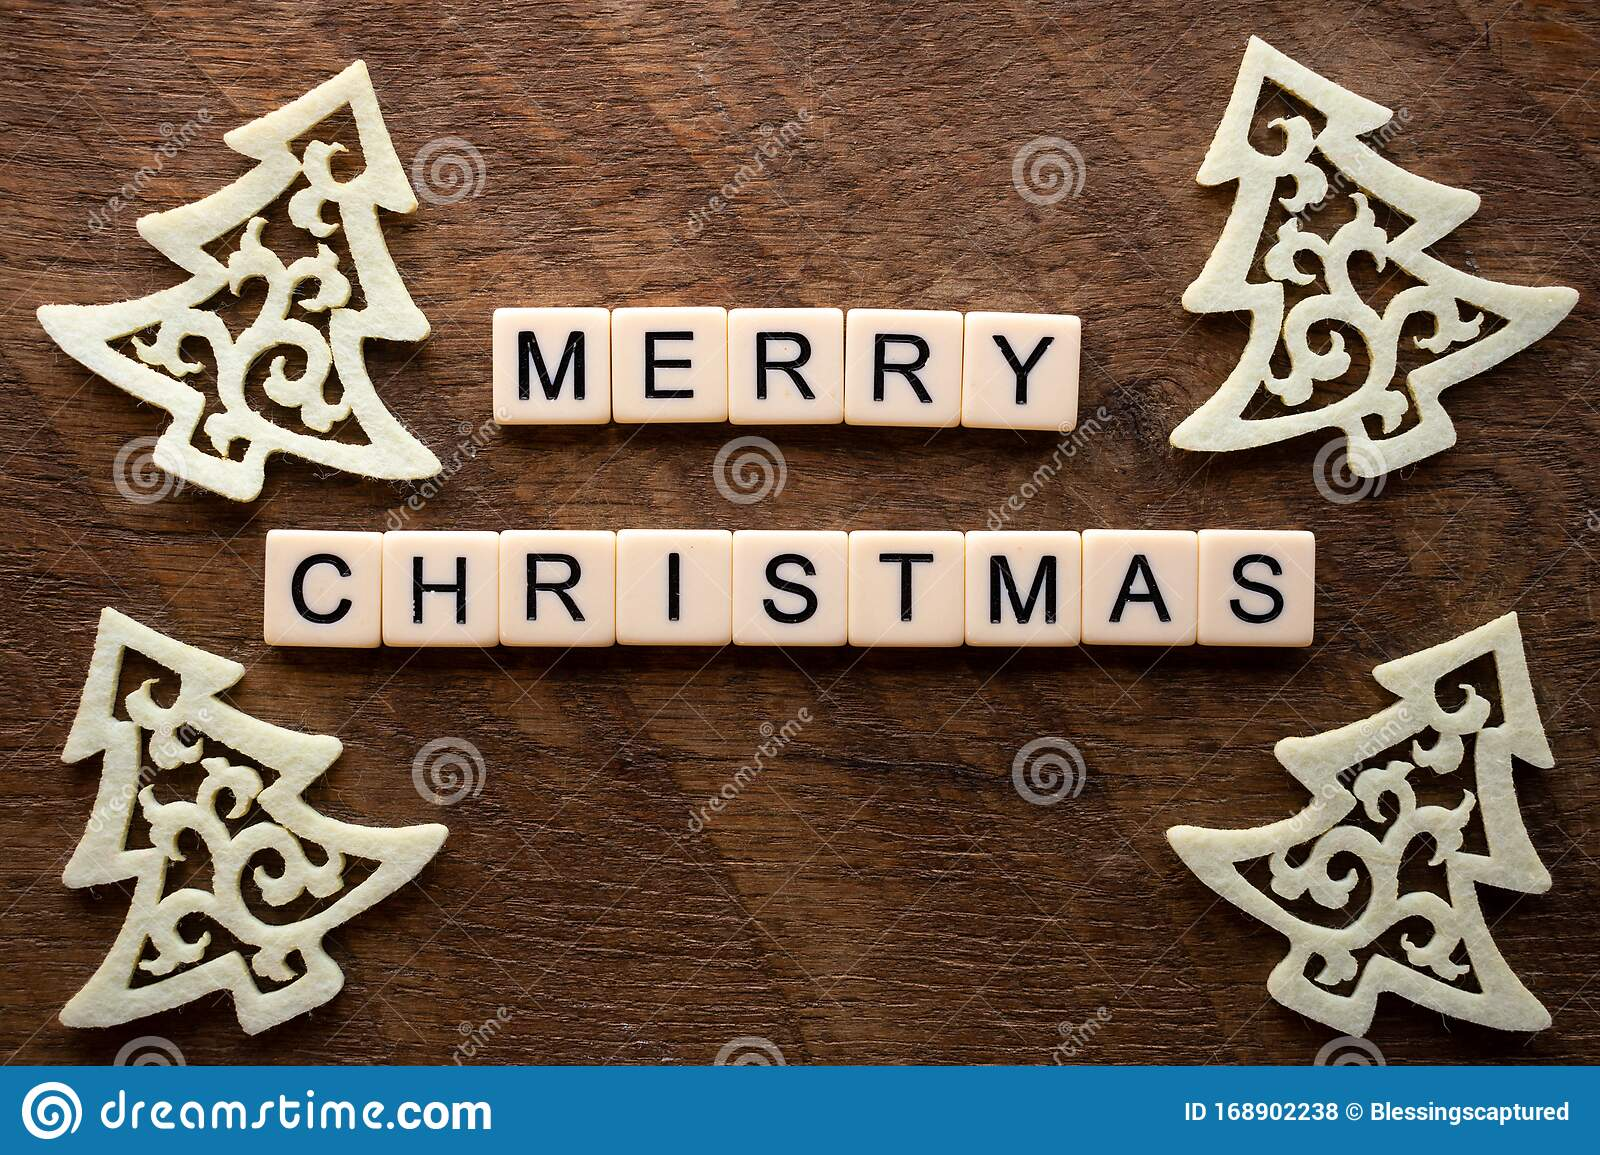 A Christmas Word With Scrabble Letters Stock Photo